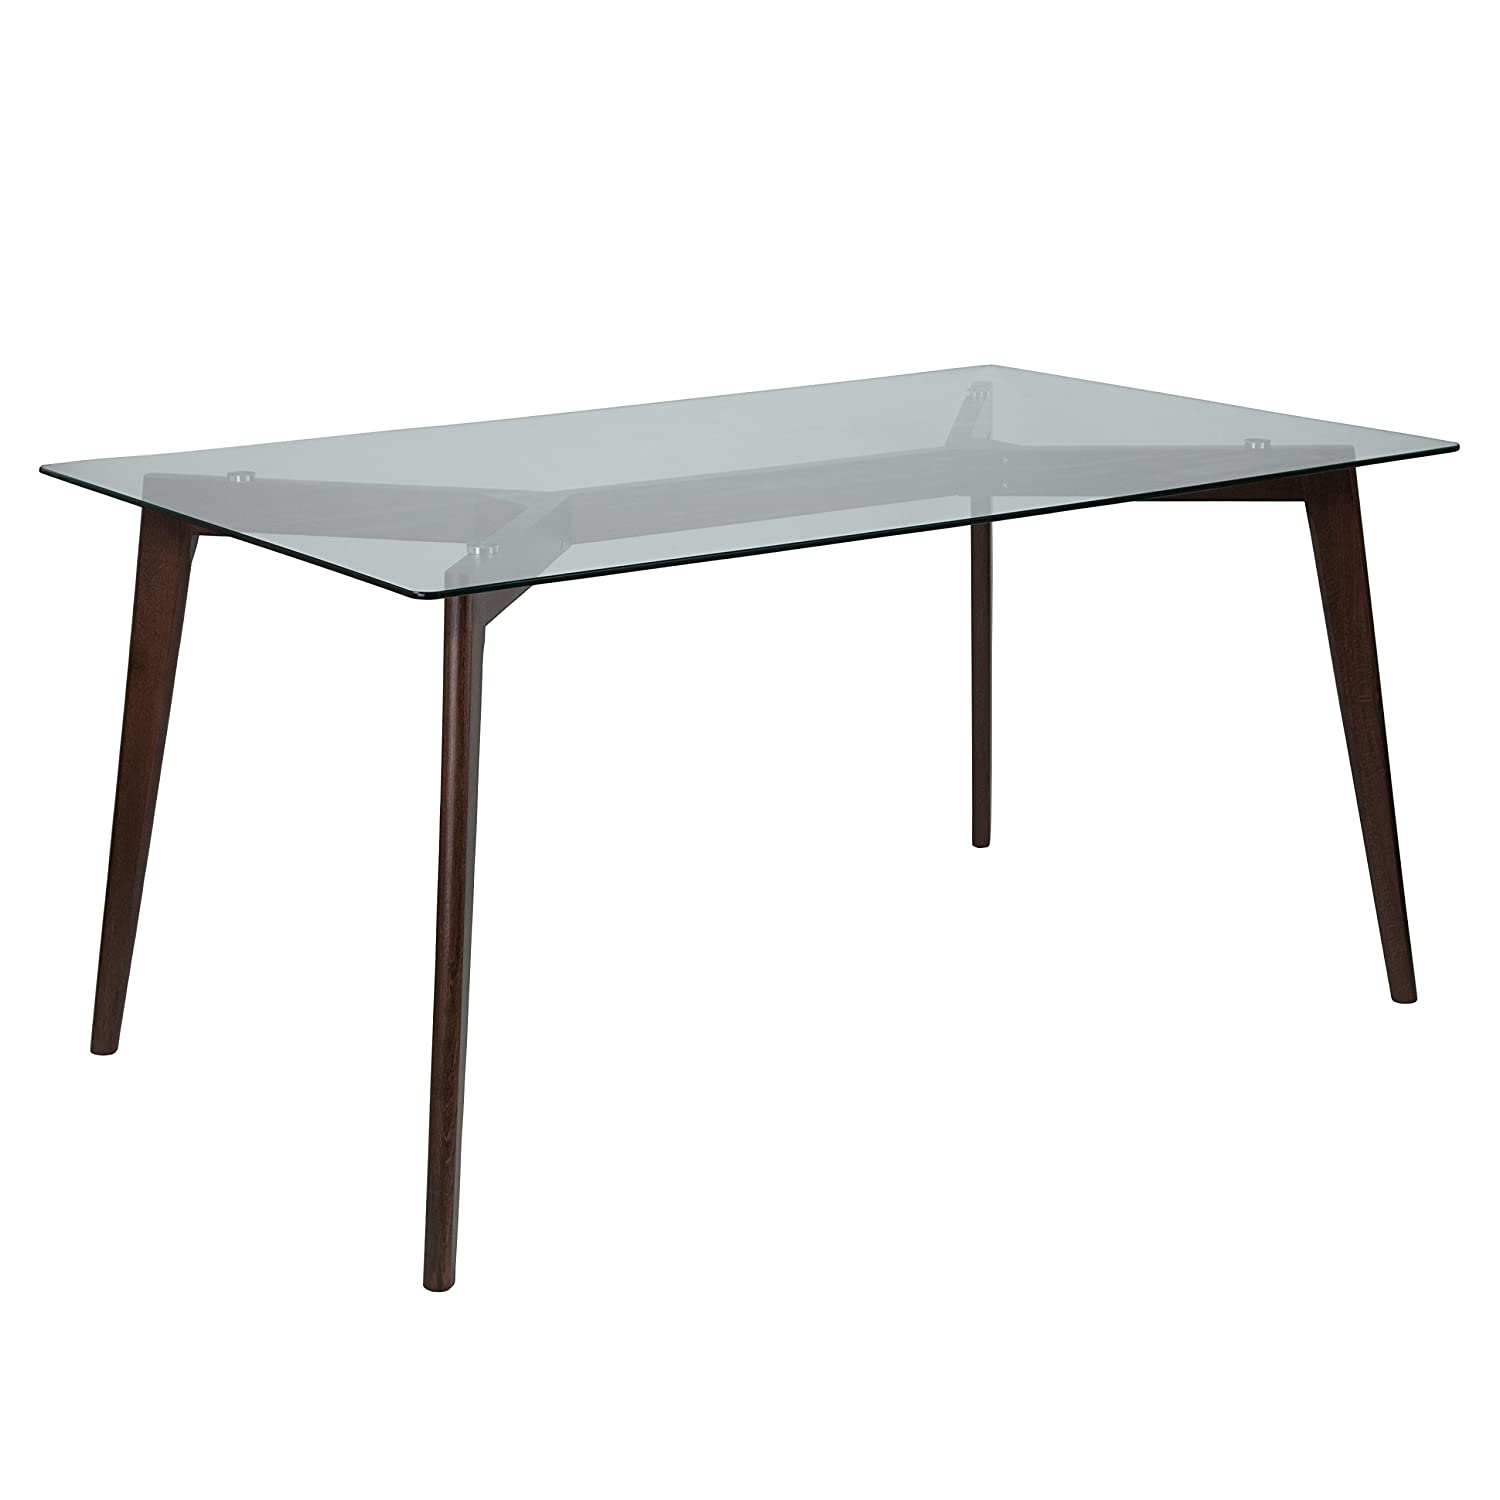 "Flash Furniture Parkside 35.25"" x 59"" Rectangular Solid Espresso Wood Table with Clear Glass Top"